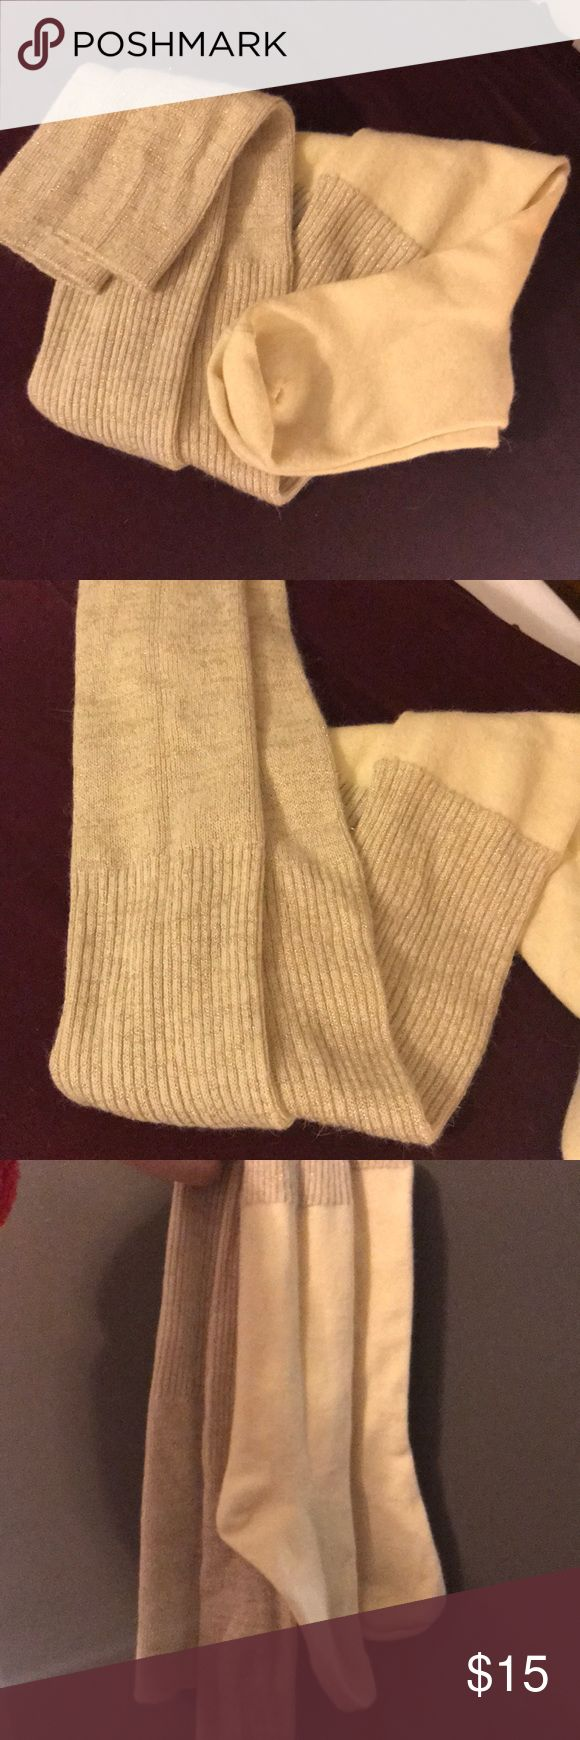 """Kate spade thigh high socks NWOT never worn Kate spade ribbed, color block over the knee glittery socks. They are a cream color at the bottom and a gold textured weave at the top.   """"Contrasting color and texture plays up the trendy blocked patterning of wool-kissed socks that can be worn soft and slouchy or pulled up over the knees.""""  Rayon/wool/nylon/polyester/other fibers/spandex; hand wash. kate spade Accessories Hosiery & Socks"""